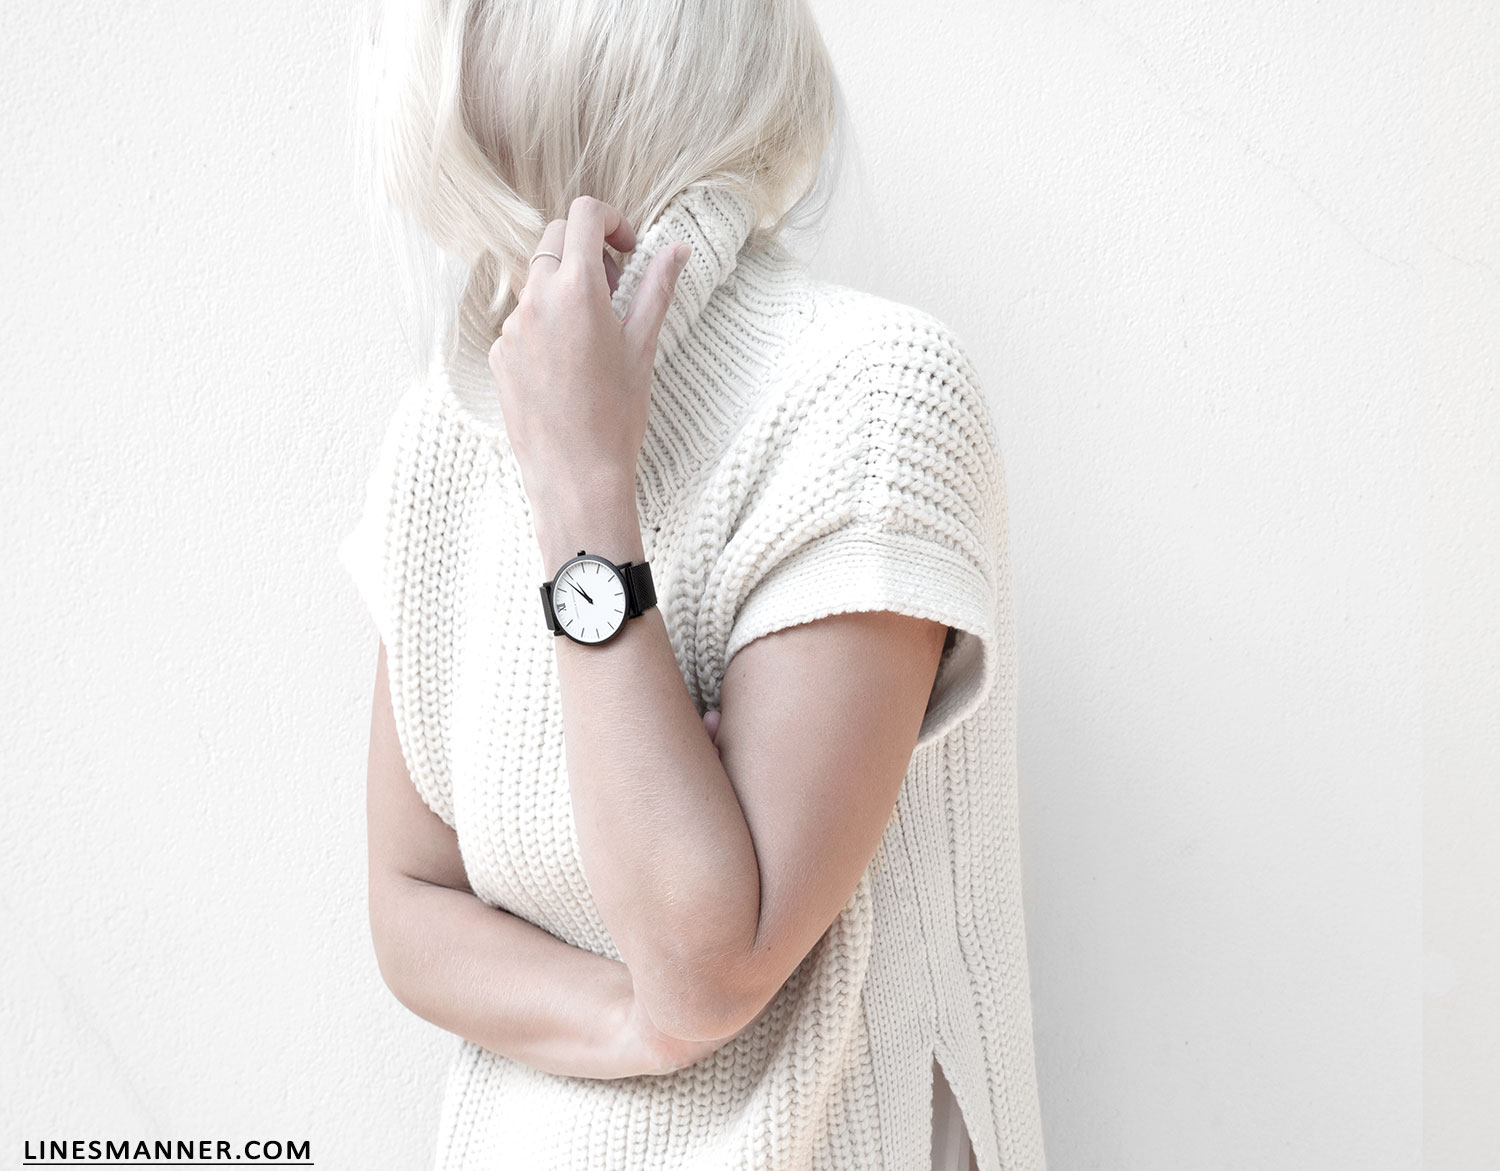 Lines-Manner-Sleeveless-Clean-Minimal-Effortless-Neutrals-Whiteout-Details-Essential-Staple-Statement_Piece-Knit-Sweater-Turtleneck-Trans_Seasonal-Larsson_And_Jennings-Warm-6